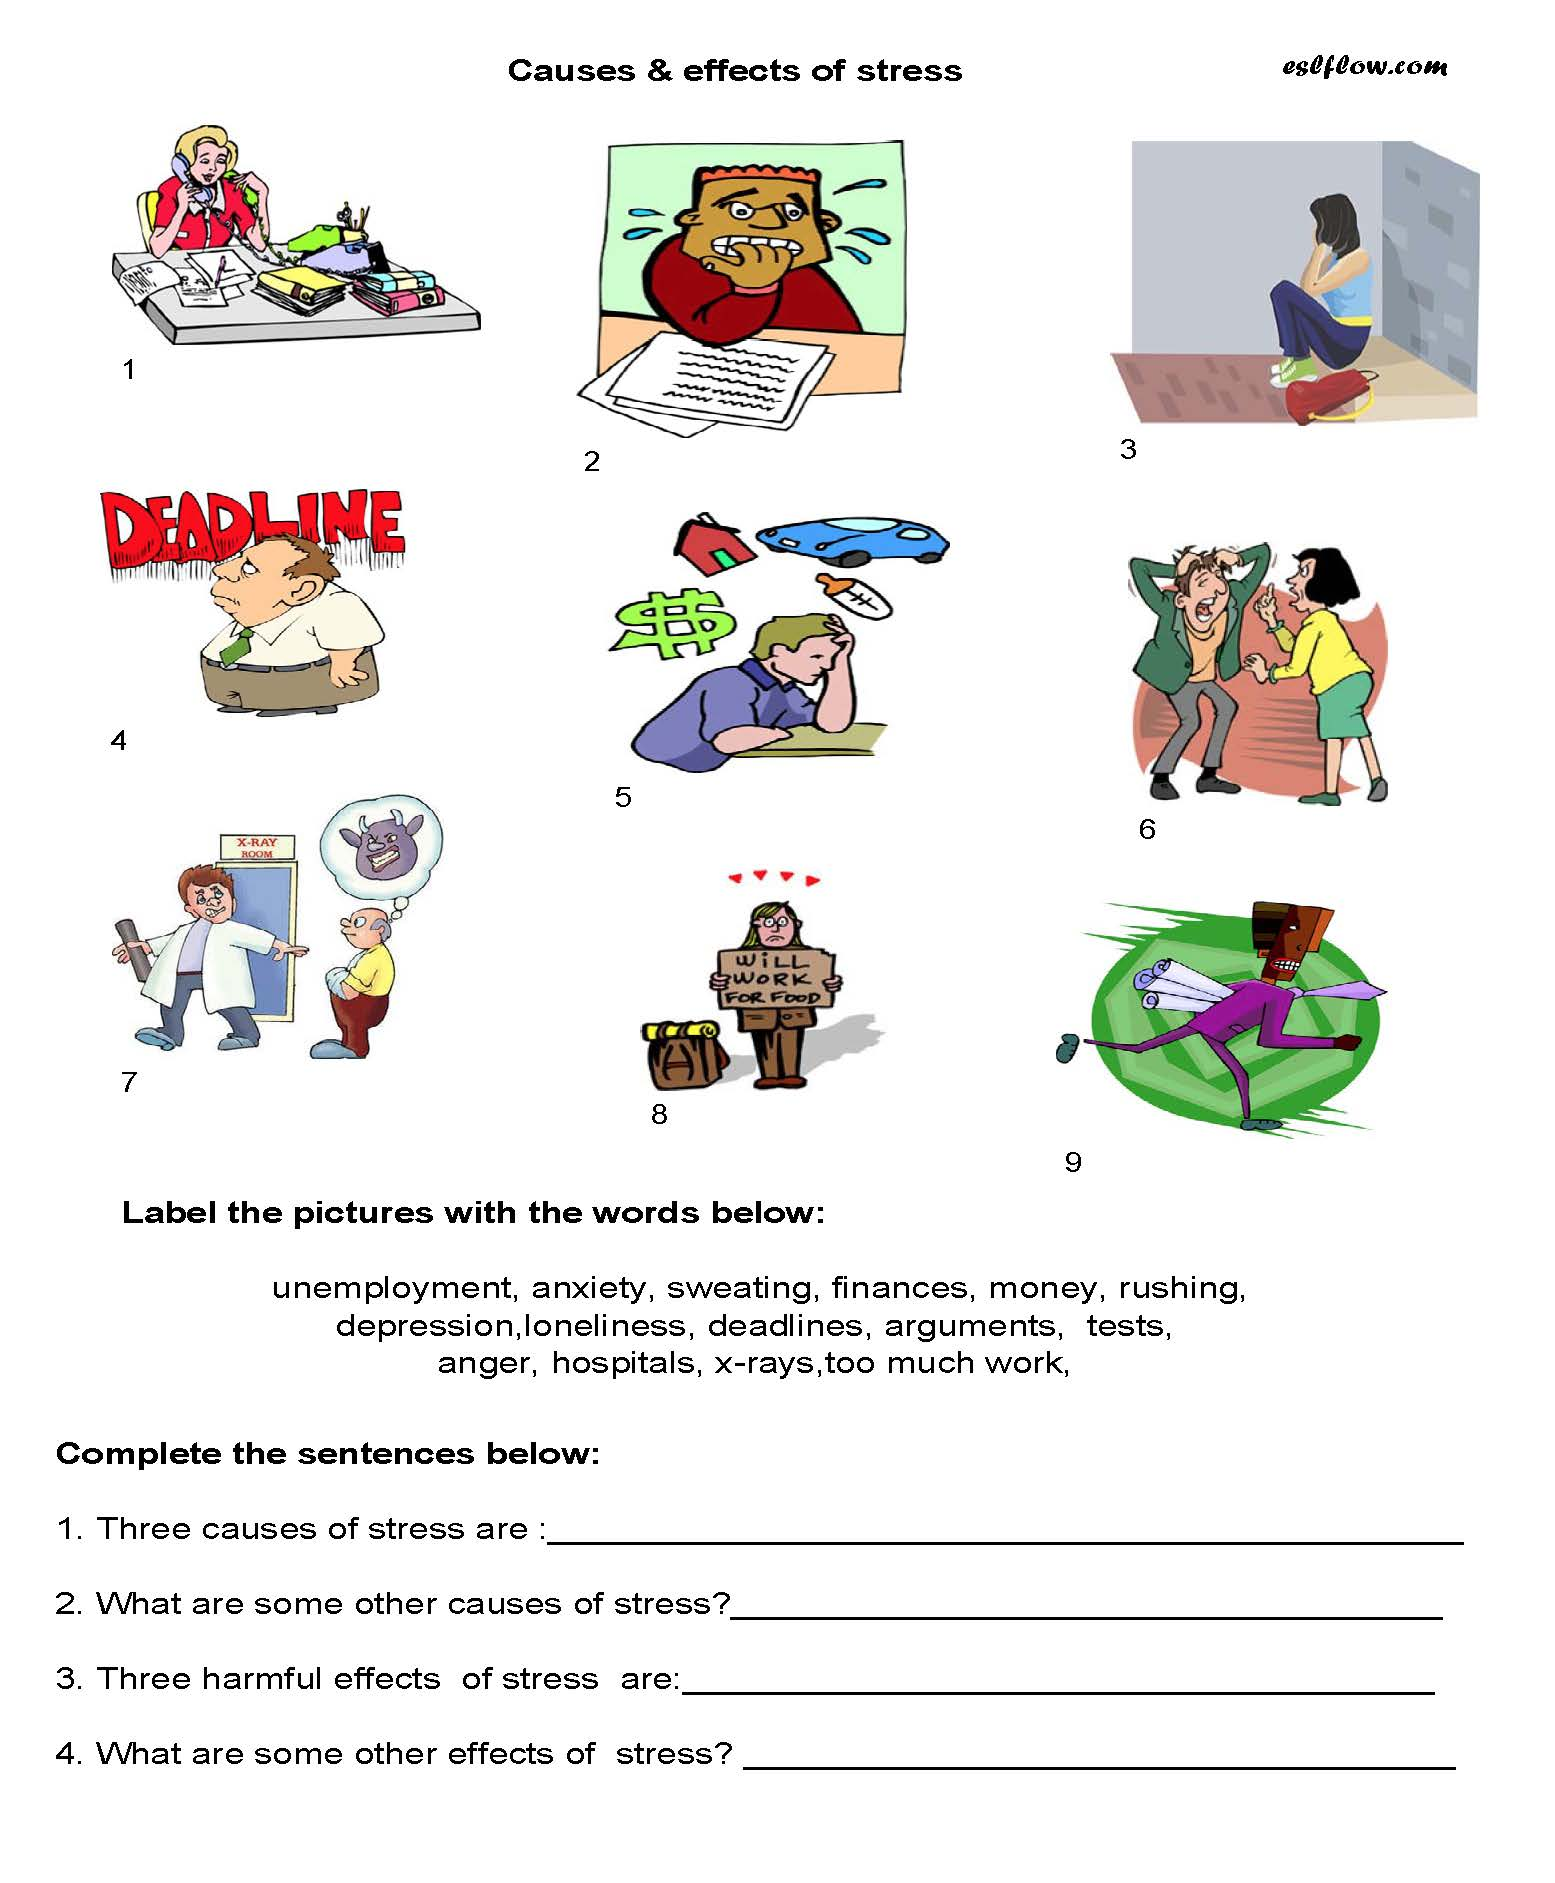 Elementary causes/effects of stress worksheet for ESL students.